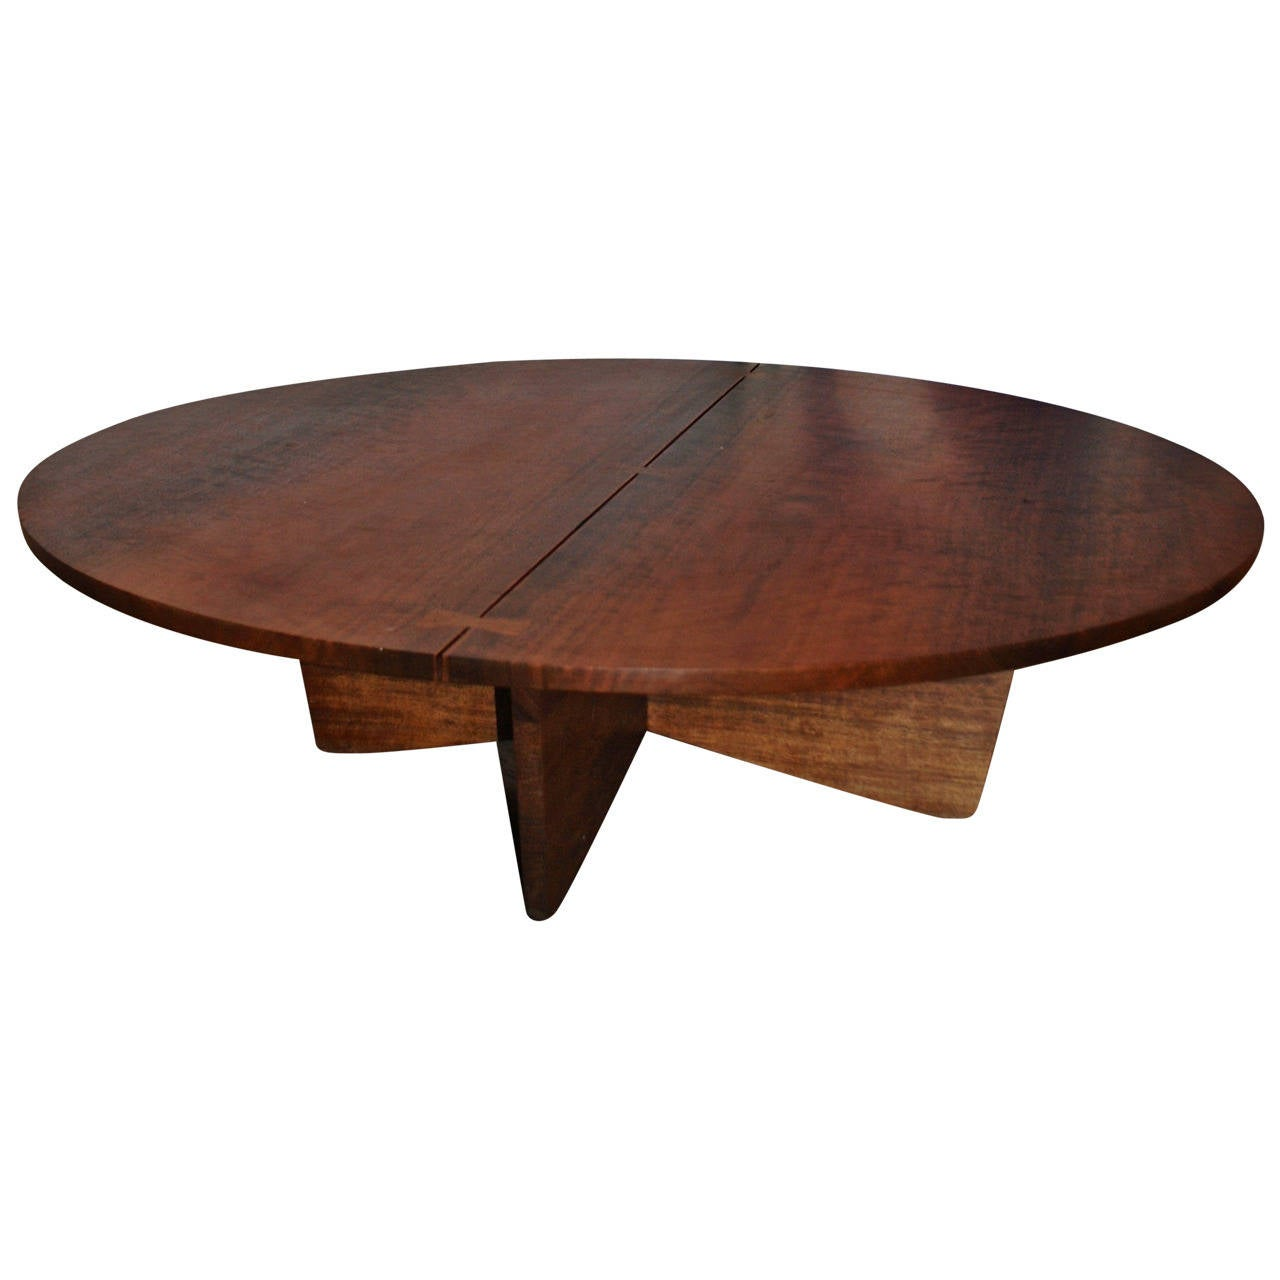 Rare george nakashima coffee table in indian laurel 1969 for sale rare george nakashima coffee table in indian laurel 1969 1 geotapseo Gallery